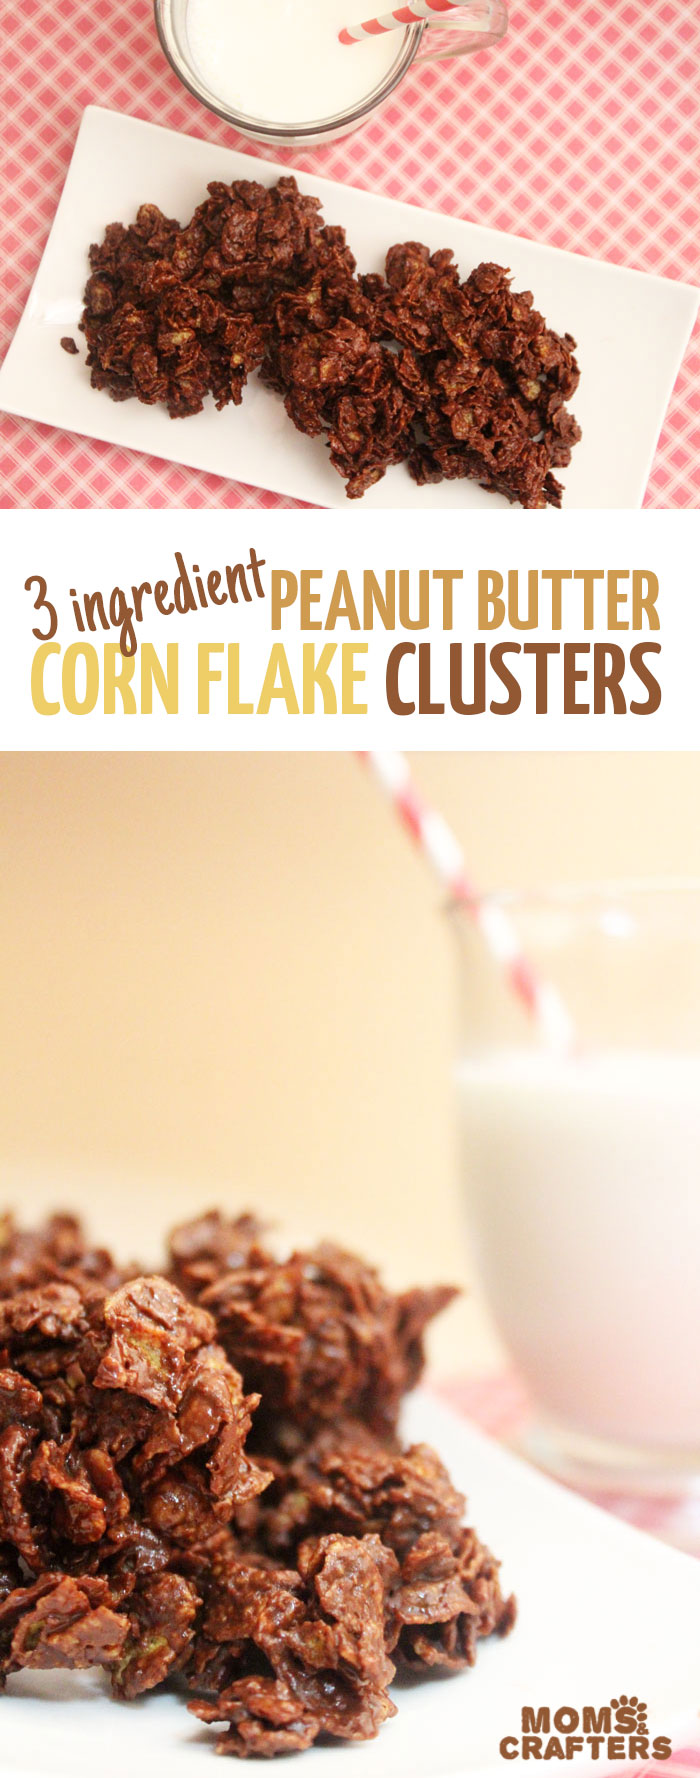 Delicious peanut butter corn flake clusters are a delicious take on a classic easy dessert or snack! Click for this 3 ingredient really easy recipe!